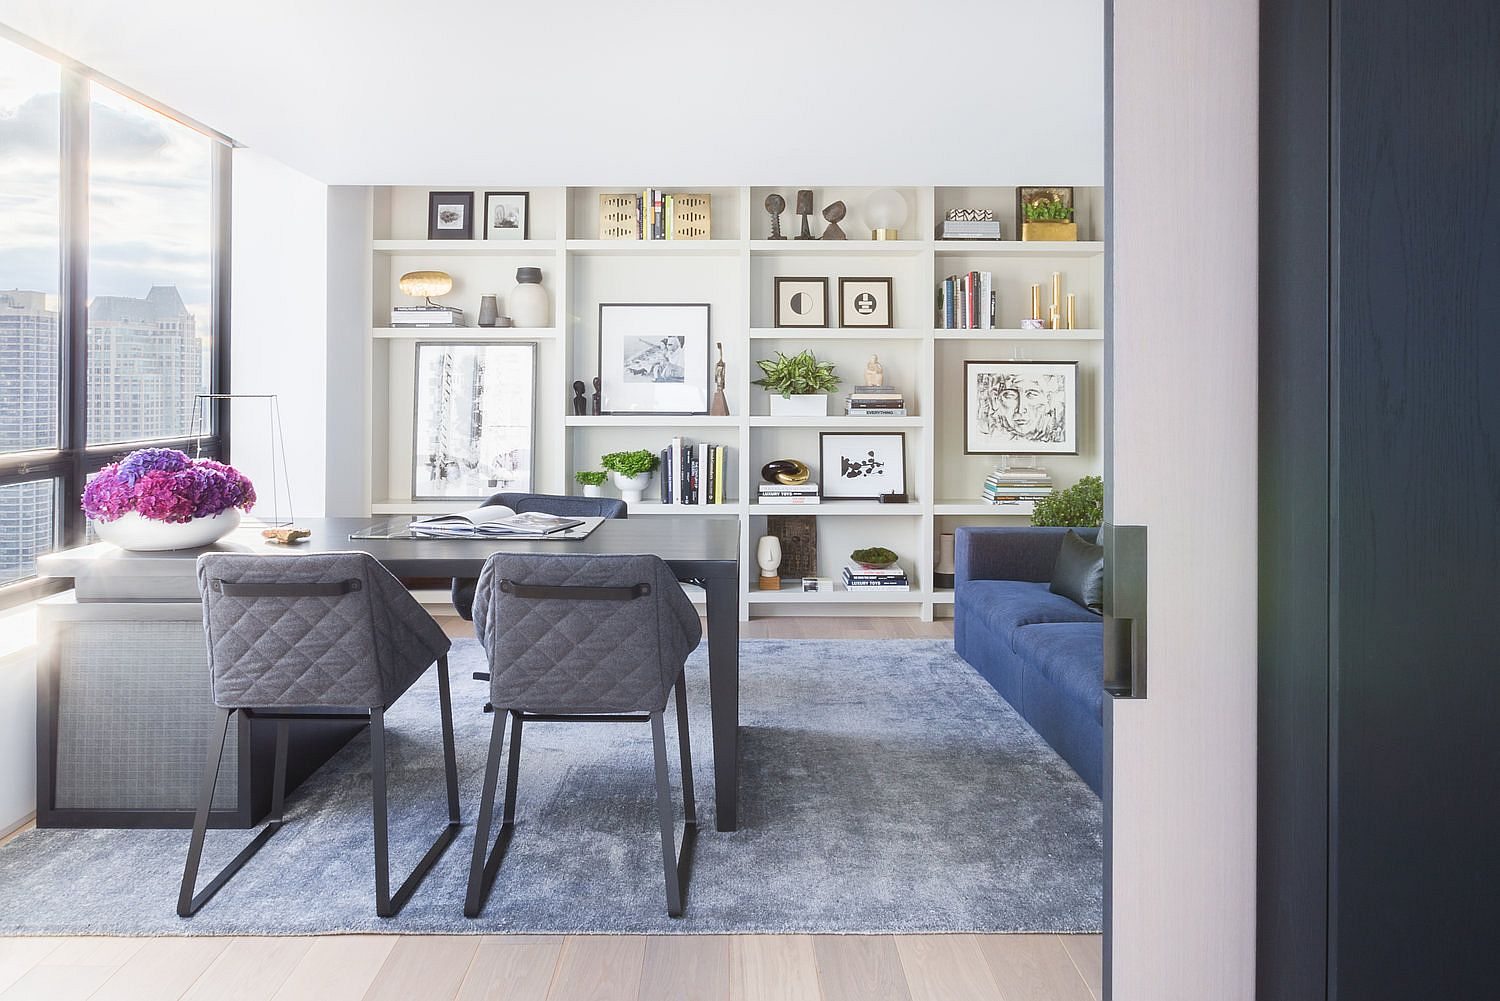 Open shelves with books, wall art and accessories add color and contrast to the setting